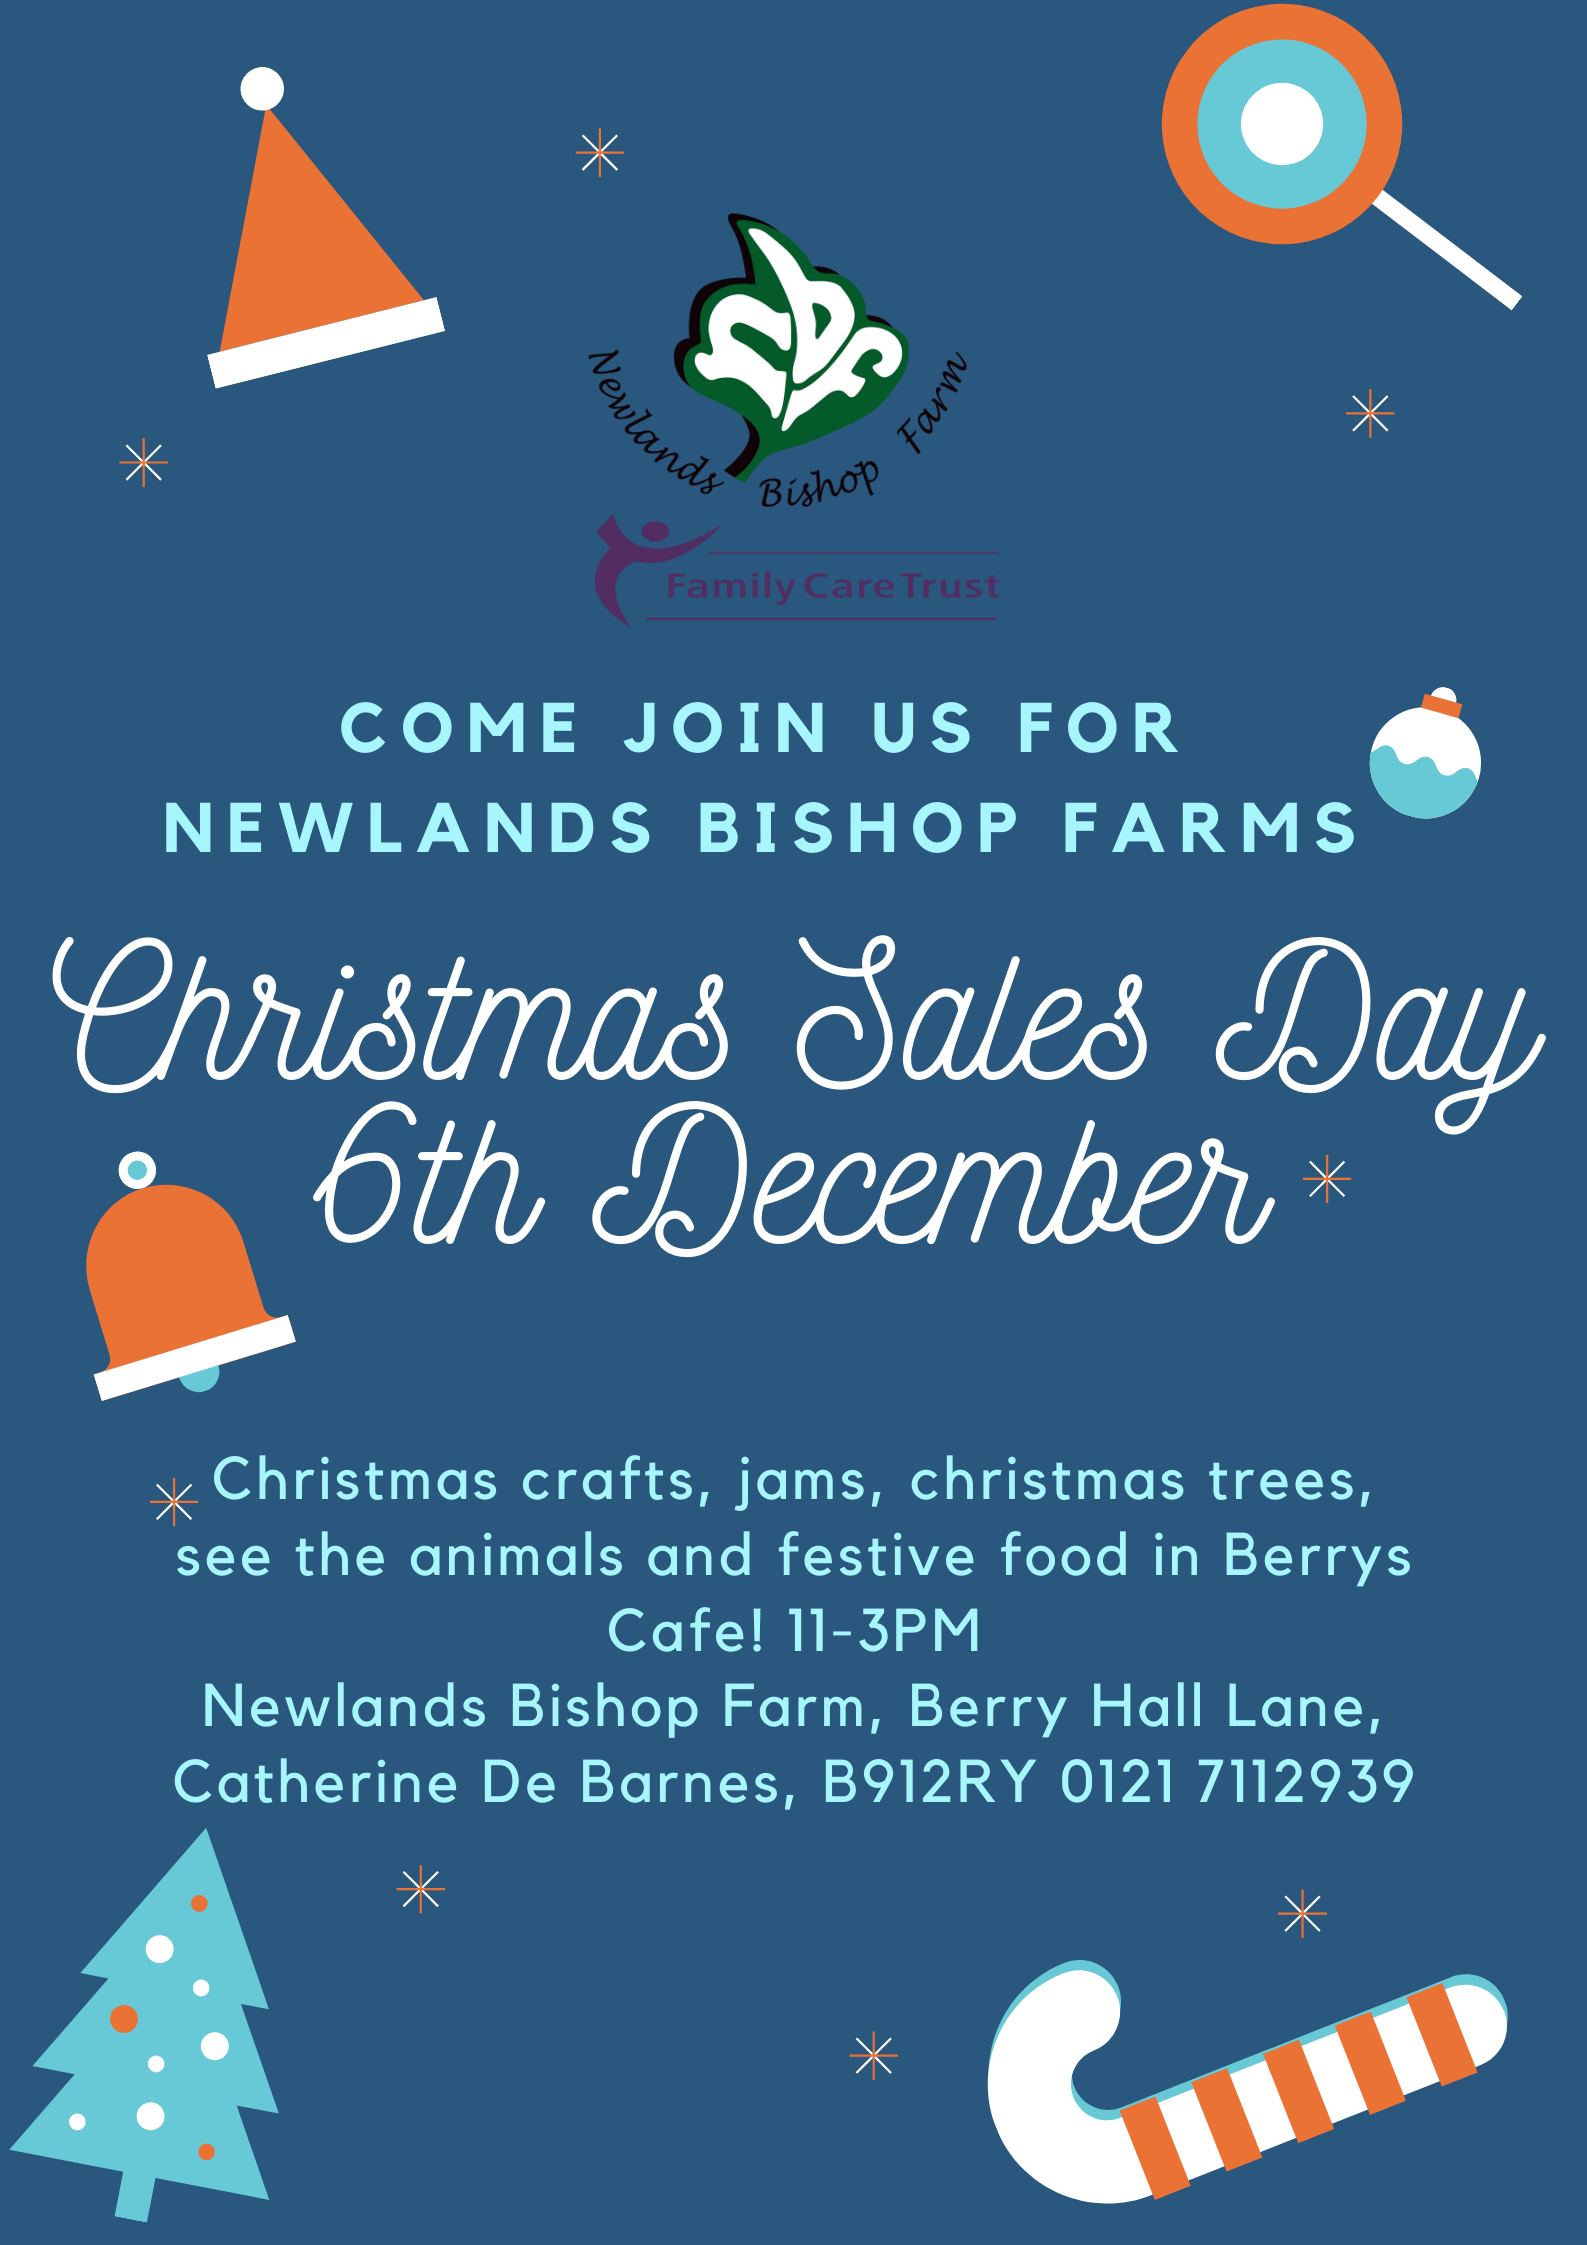 Newlands Bishop Farm Christmas Sales Day 6th December 2019